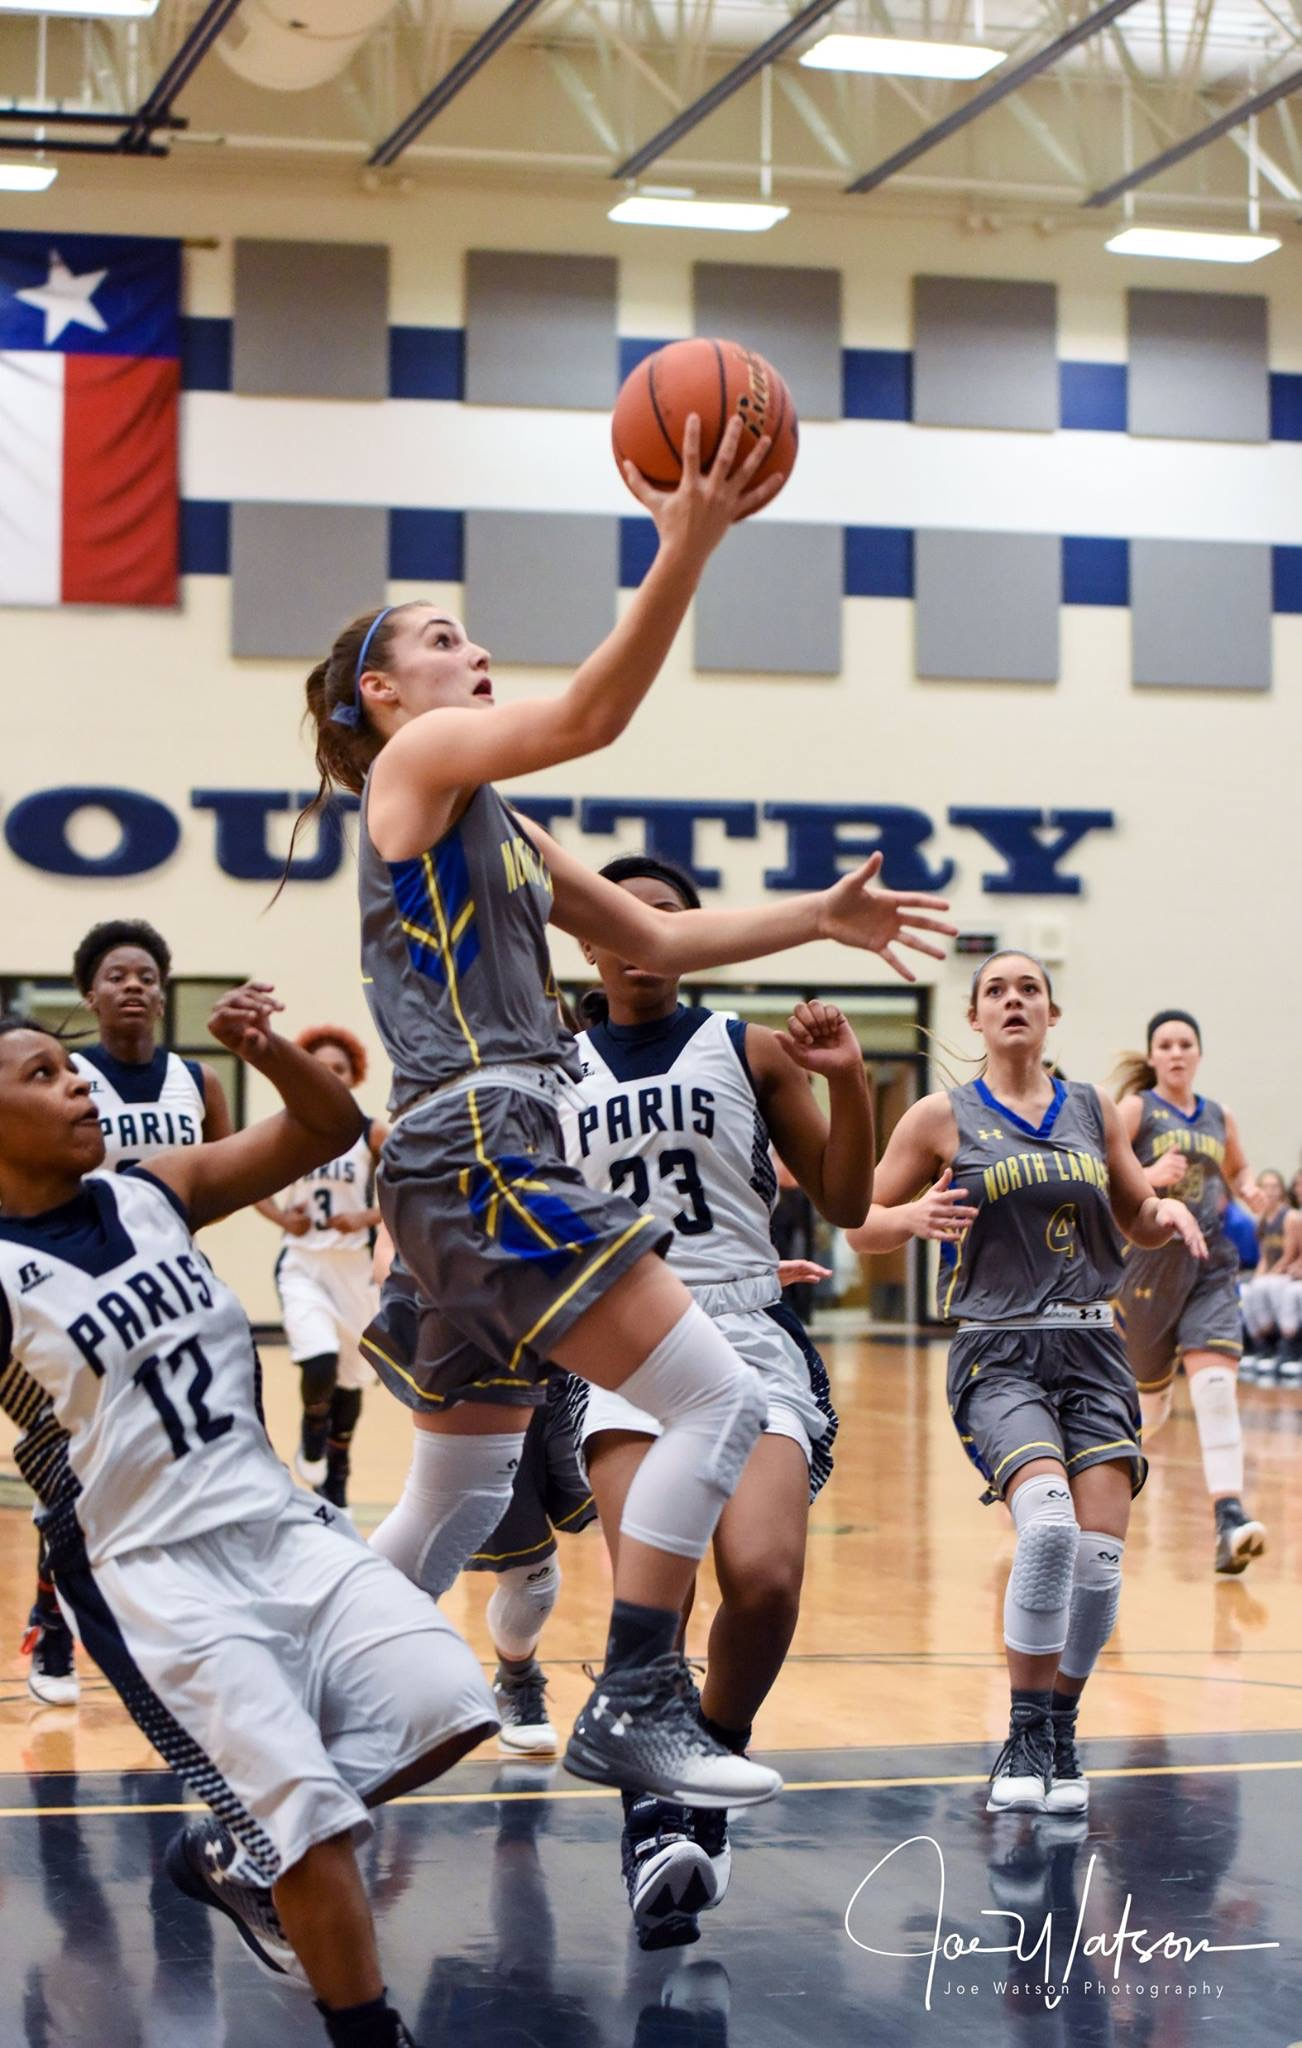 (Photo by Joe Watson) Madison Morrison going in for a layup against Paris High.